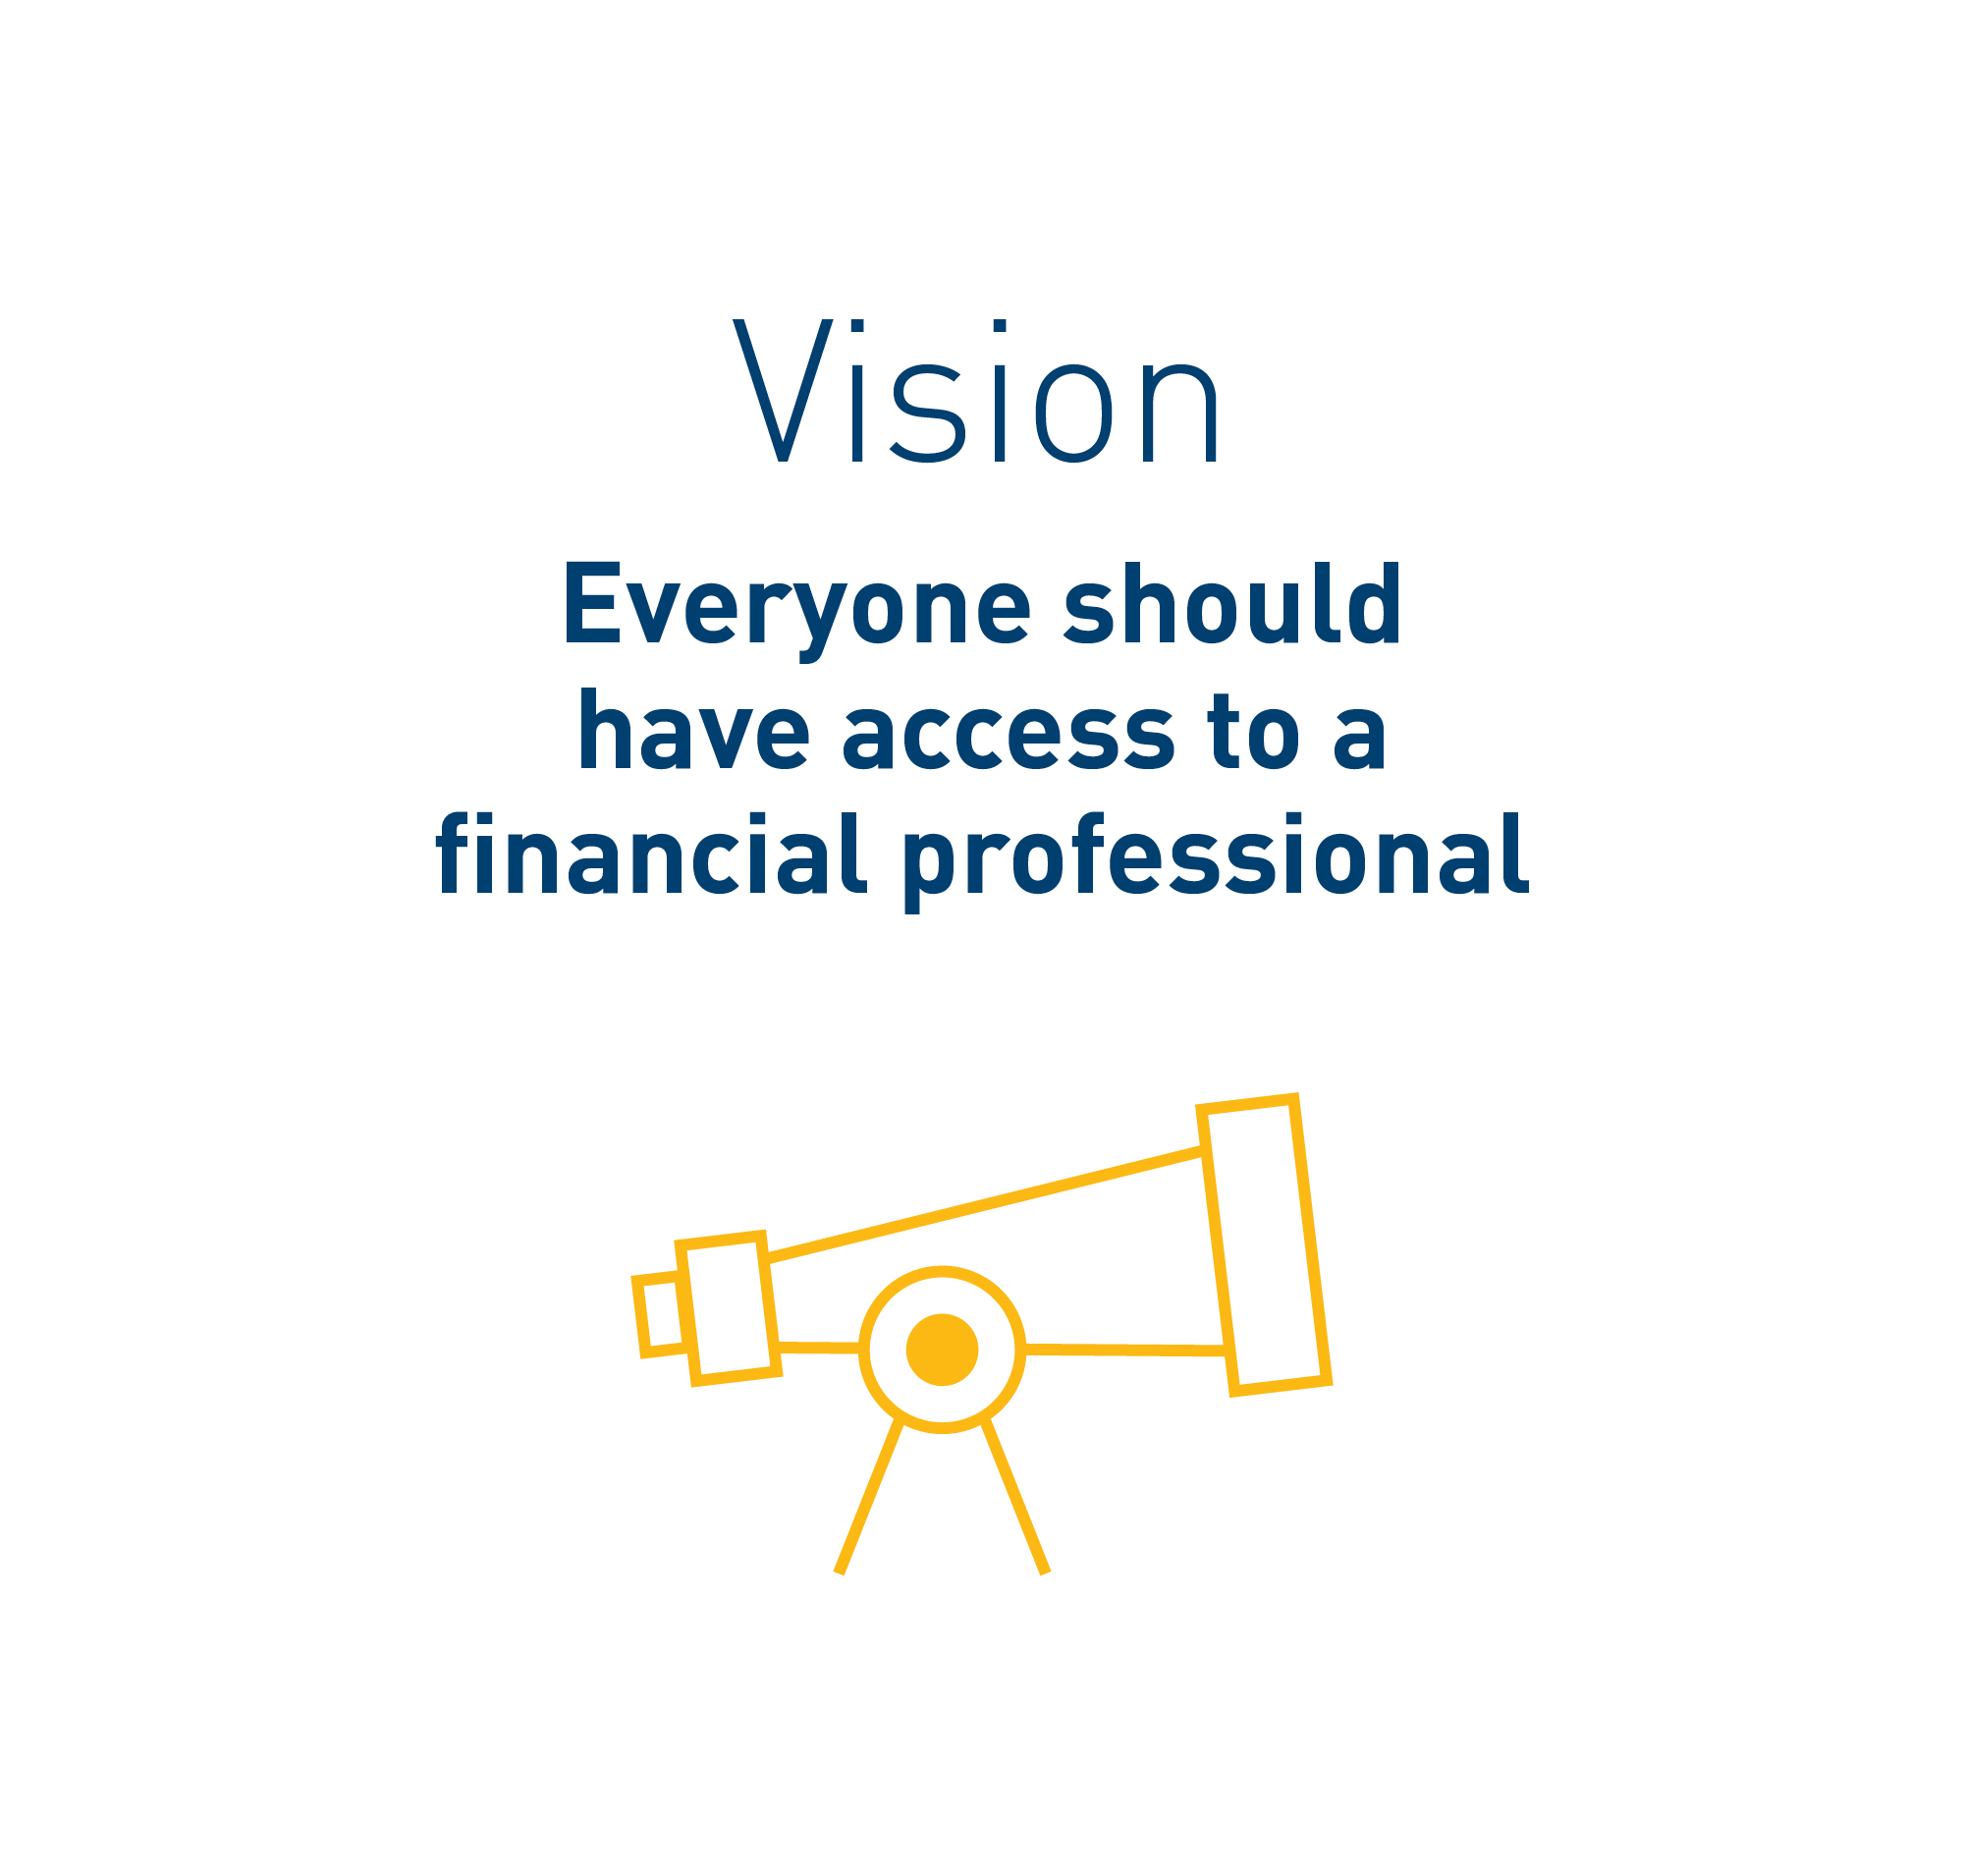 Text in image: Vision – everyone should have access to a financial professional.